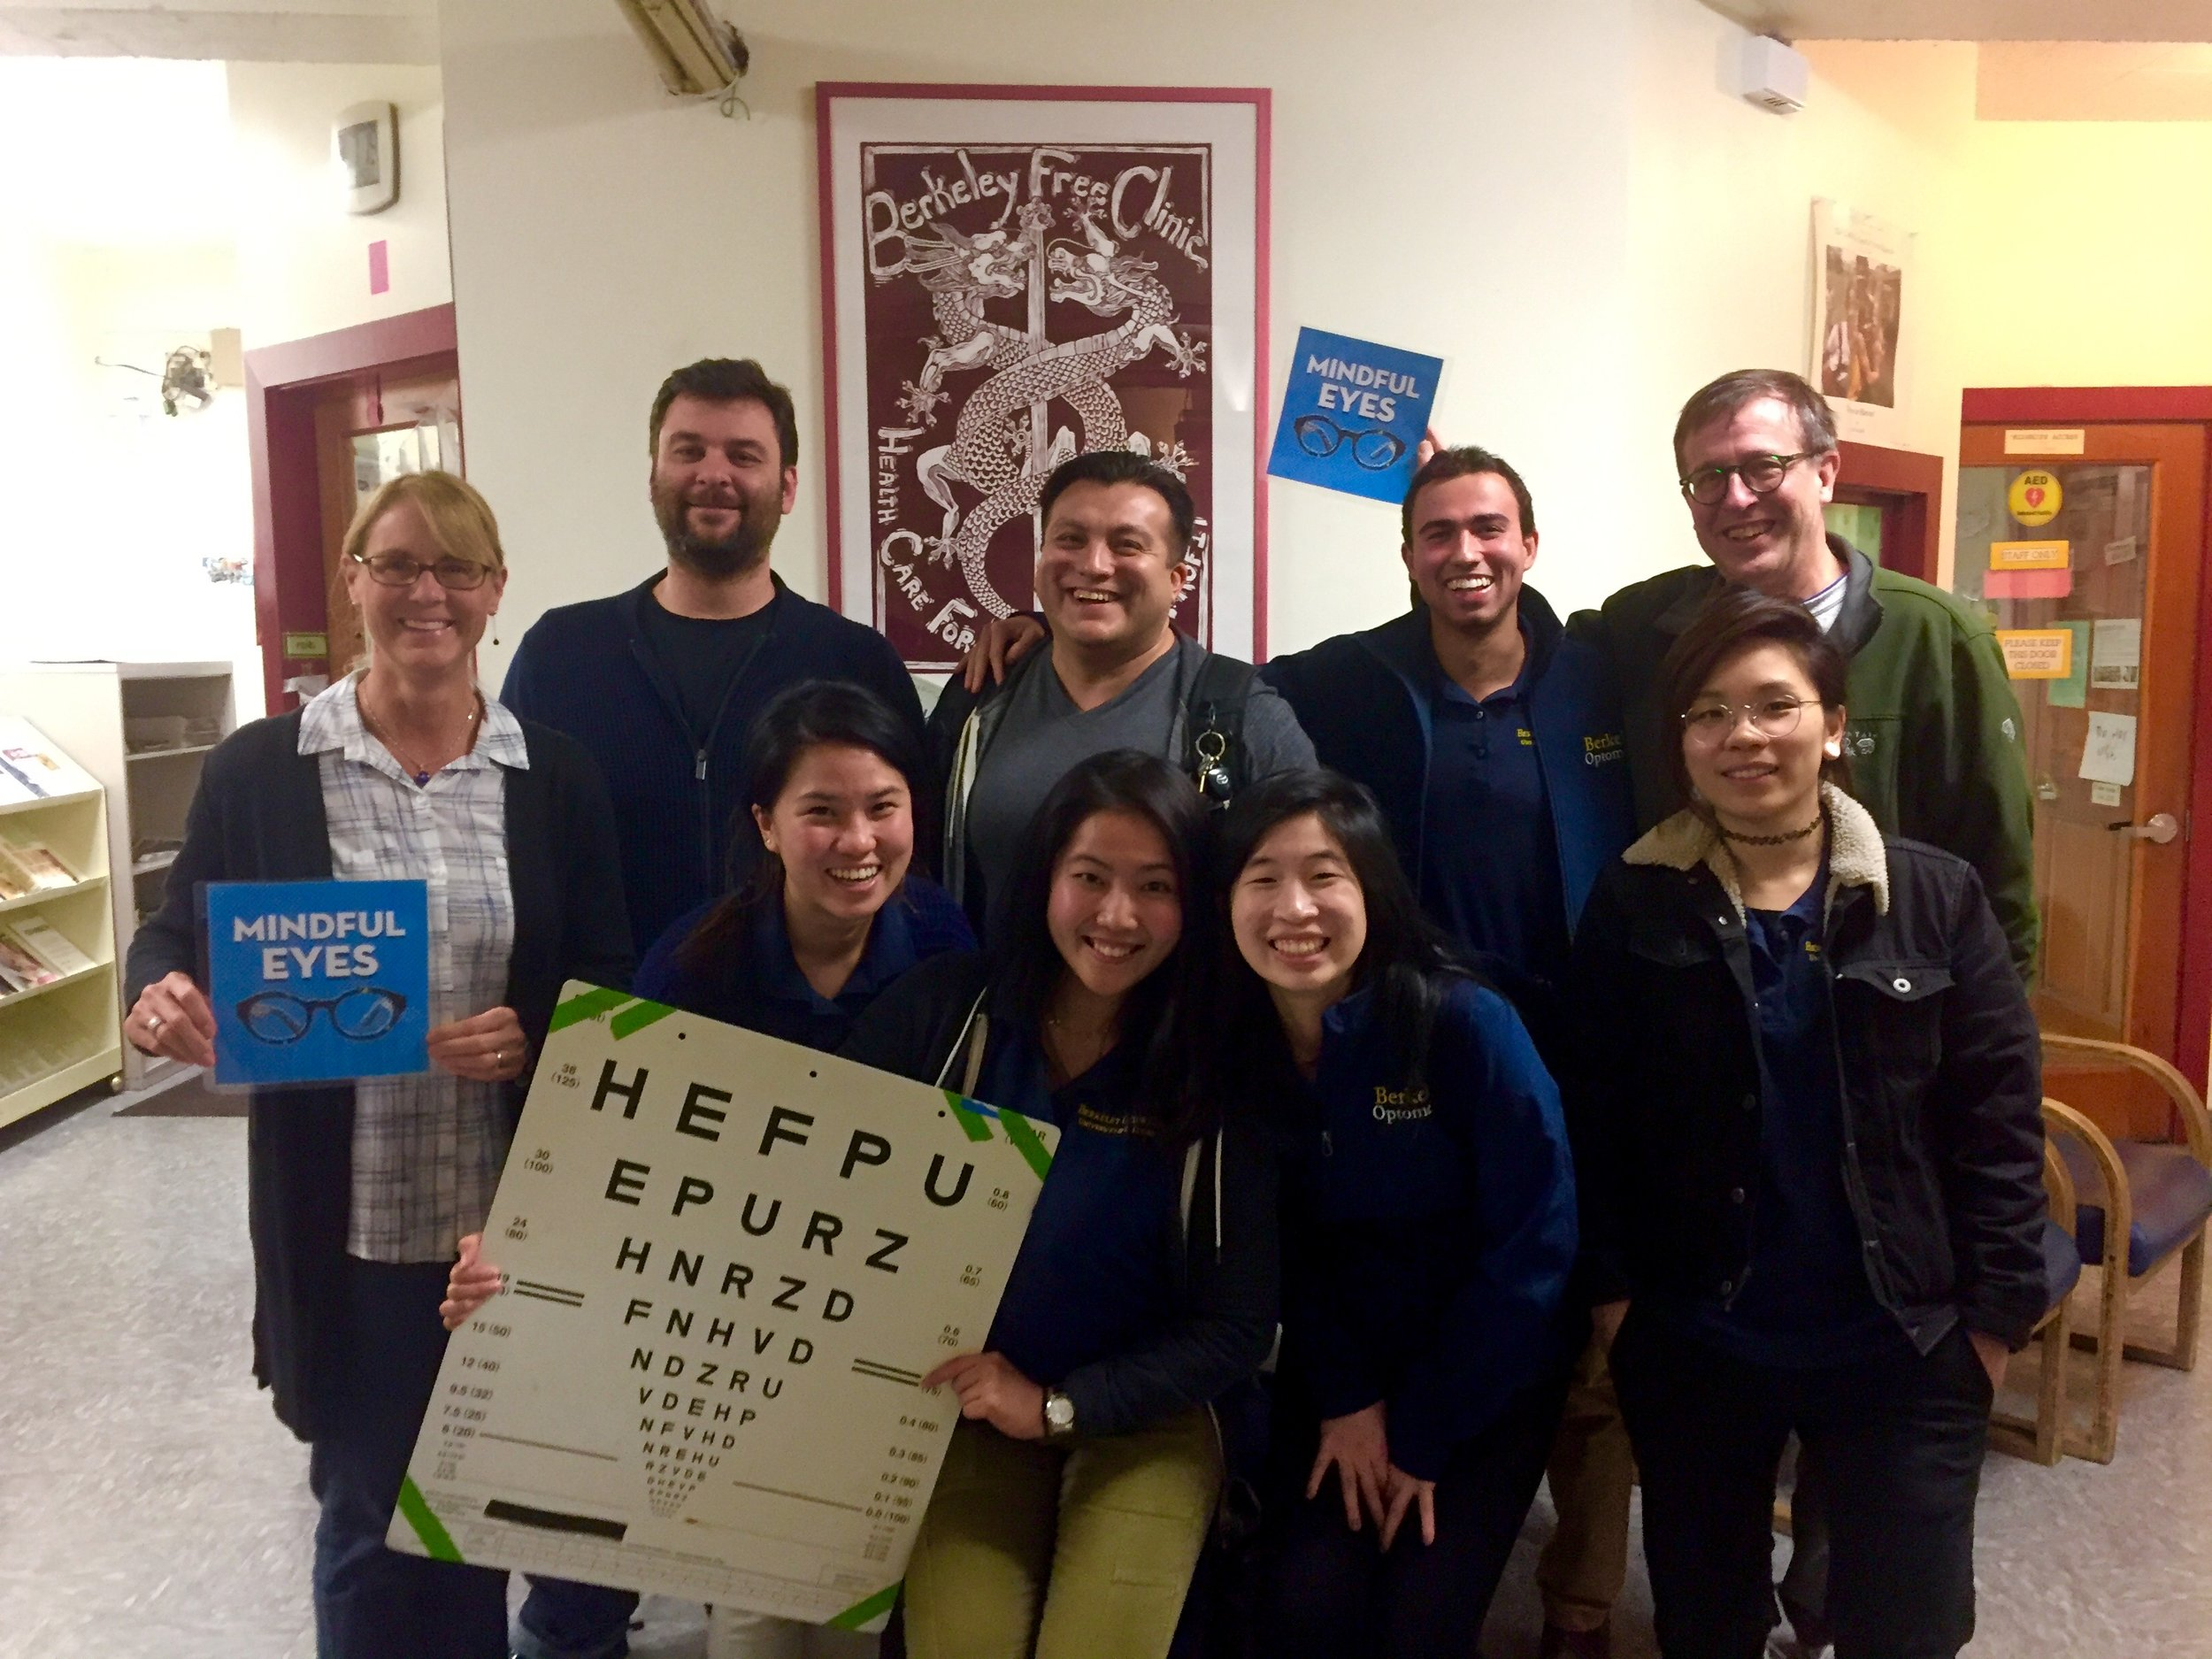 The Mindful eyes team (L to R) Back row: DR. MICHELLE HOFF (founder), Scott BAlestreri (Board), Manuel Gonzalez (Board), Milan Lockhart (berkeley optometry student), dr. Robert Dister (board), Front row: jessica yuen, peggy chen, anna xie,  and Dorothy Hsu (all berkeley optometry students)